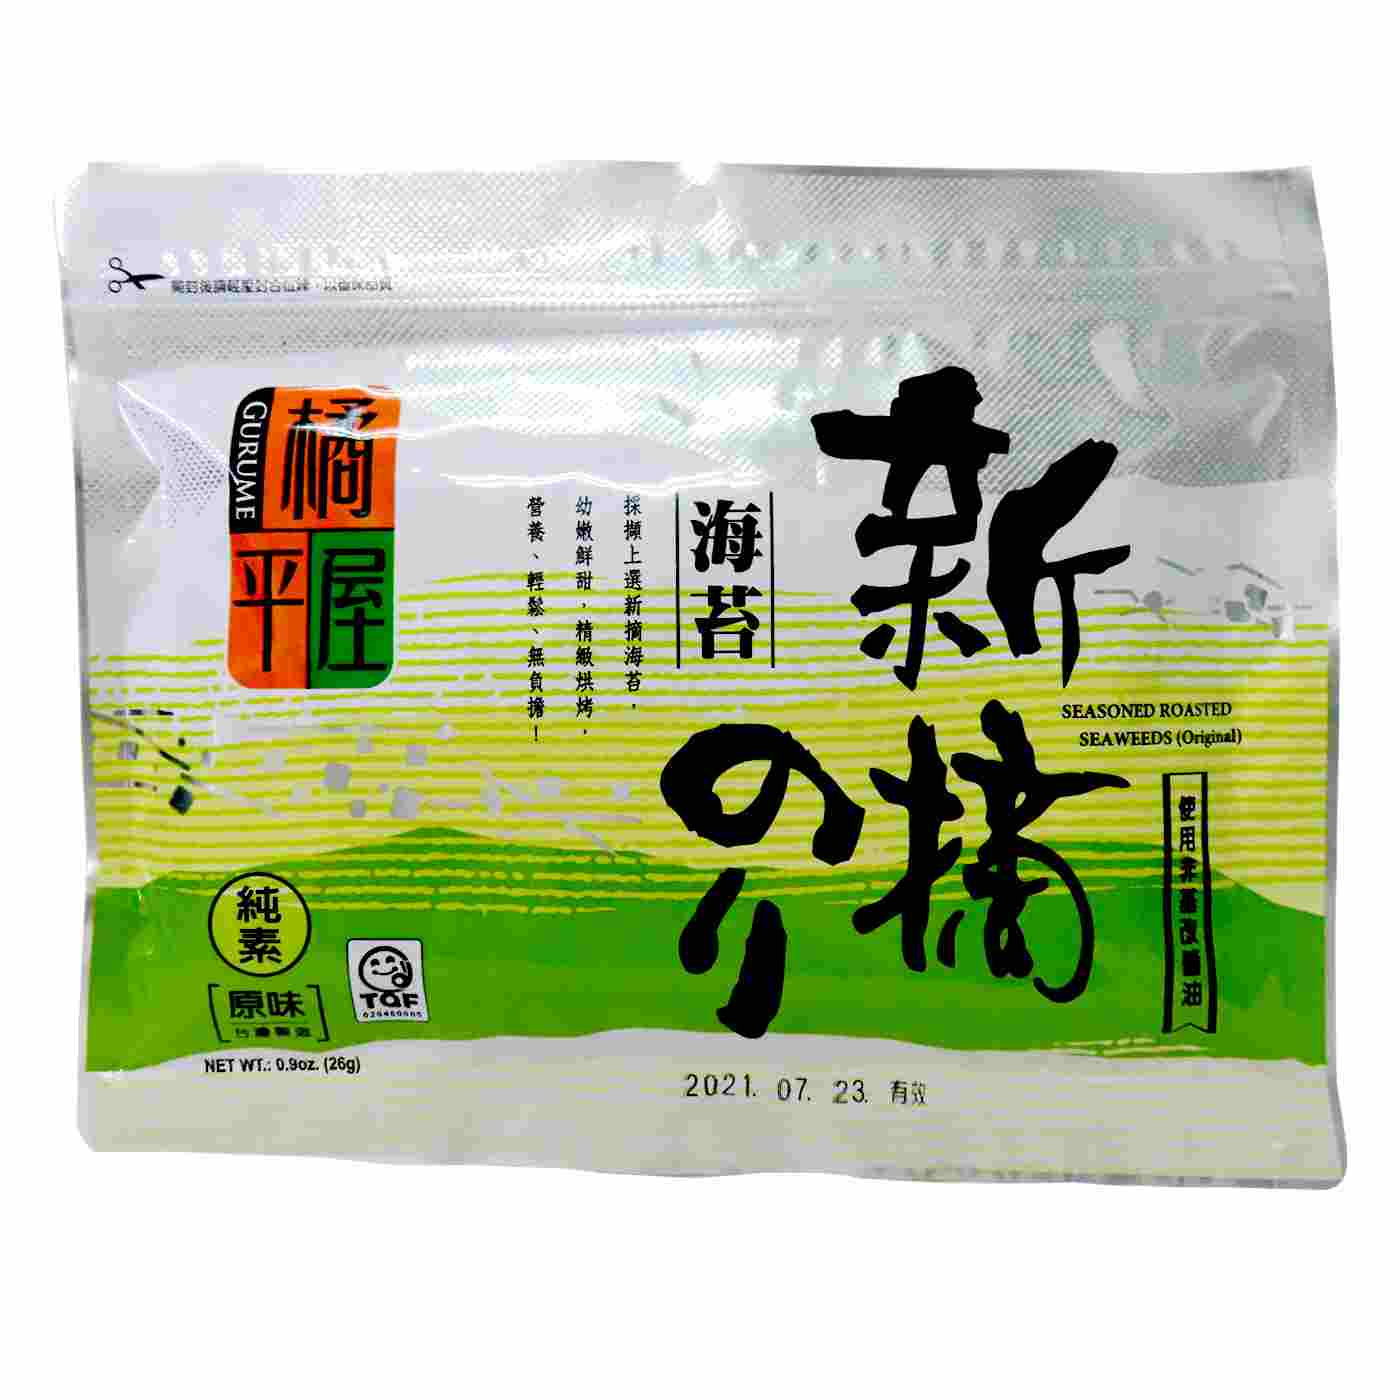 Image Abstract Seaweed 三味屋 - 新摘海苔 26 grams